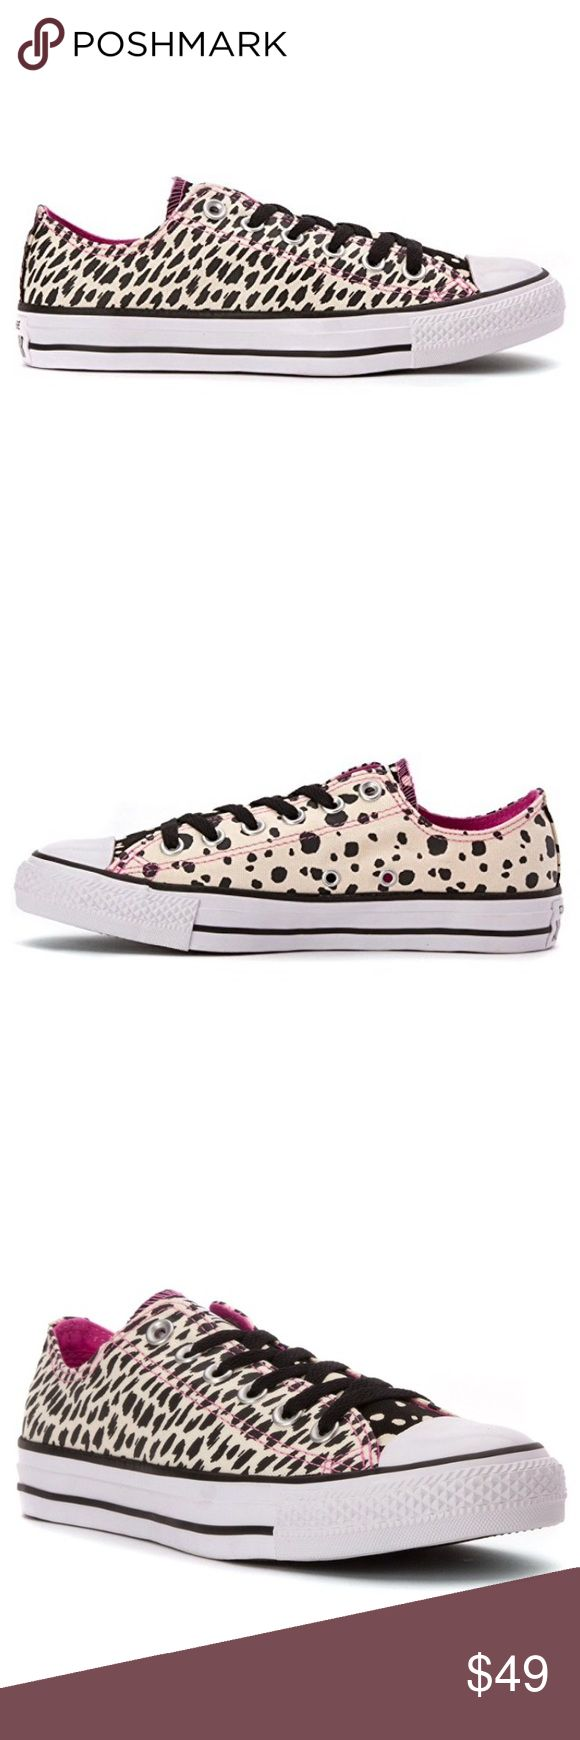 NWT CONVERSE WOMENS POLKA DOTS ANIMAL PRINT SHOES Brand new with box. 100% authentic. Price is firm ✨ ships same day or very next. WOMENS Converse Shoes Sneakers